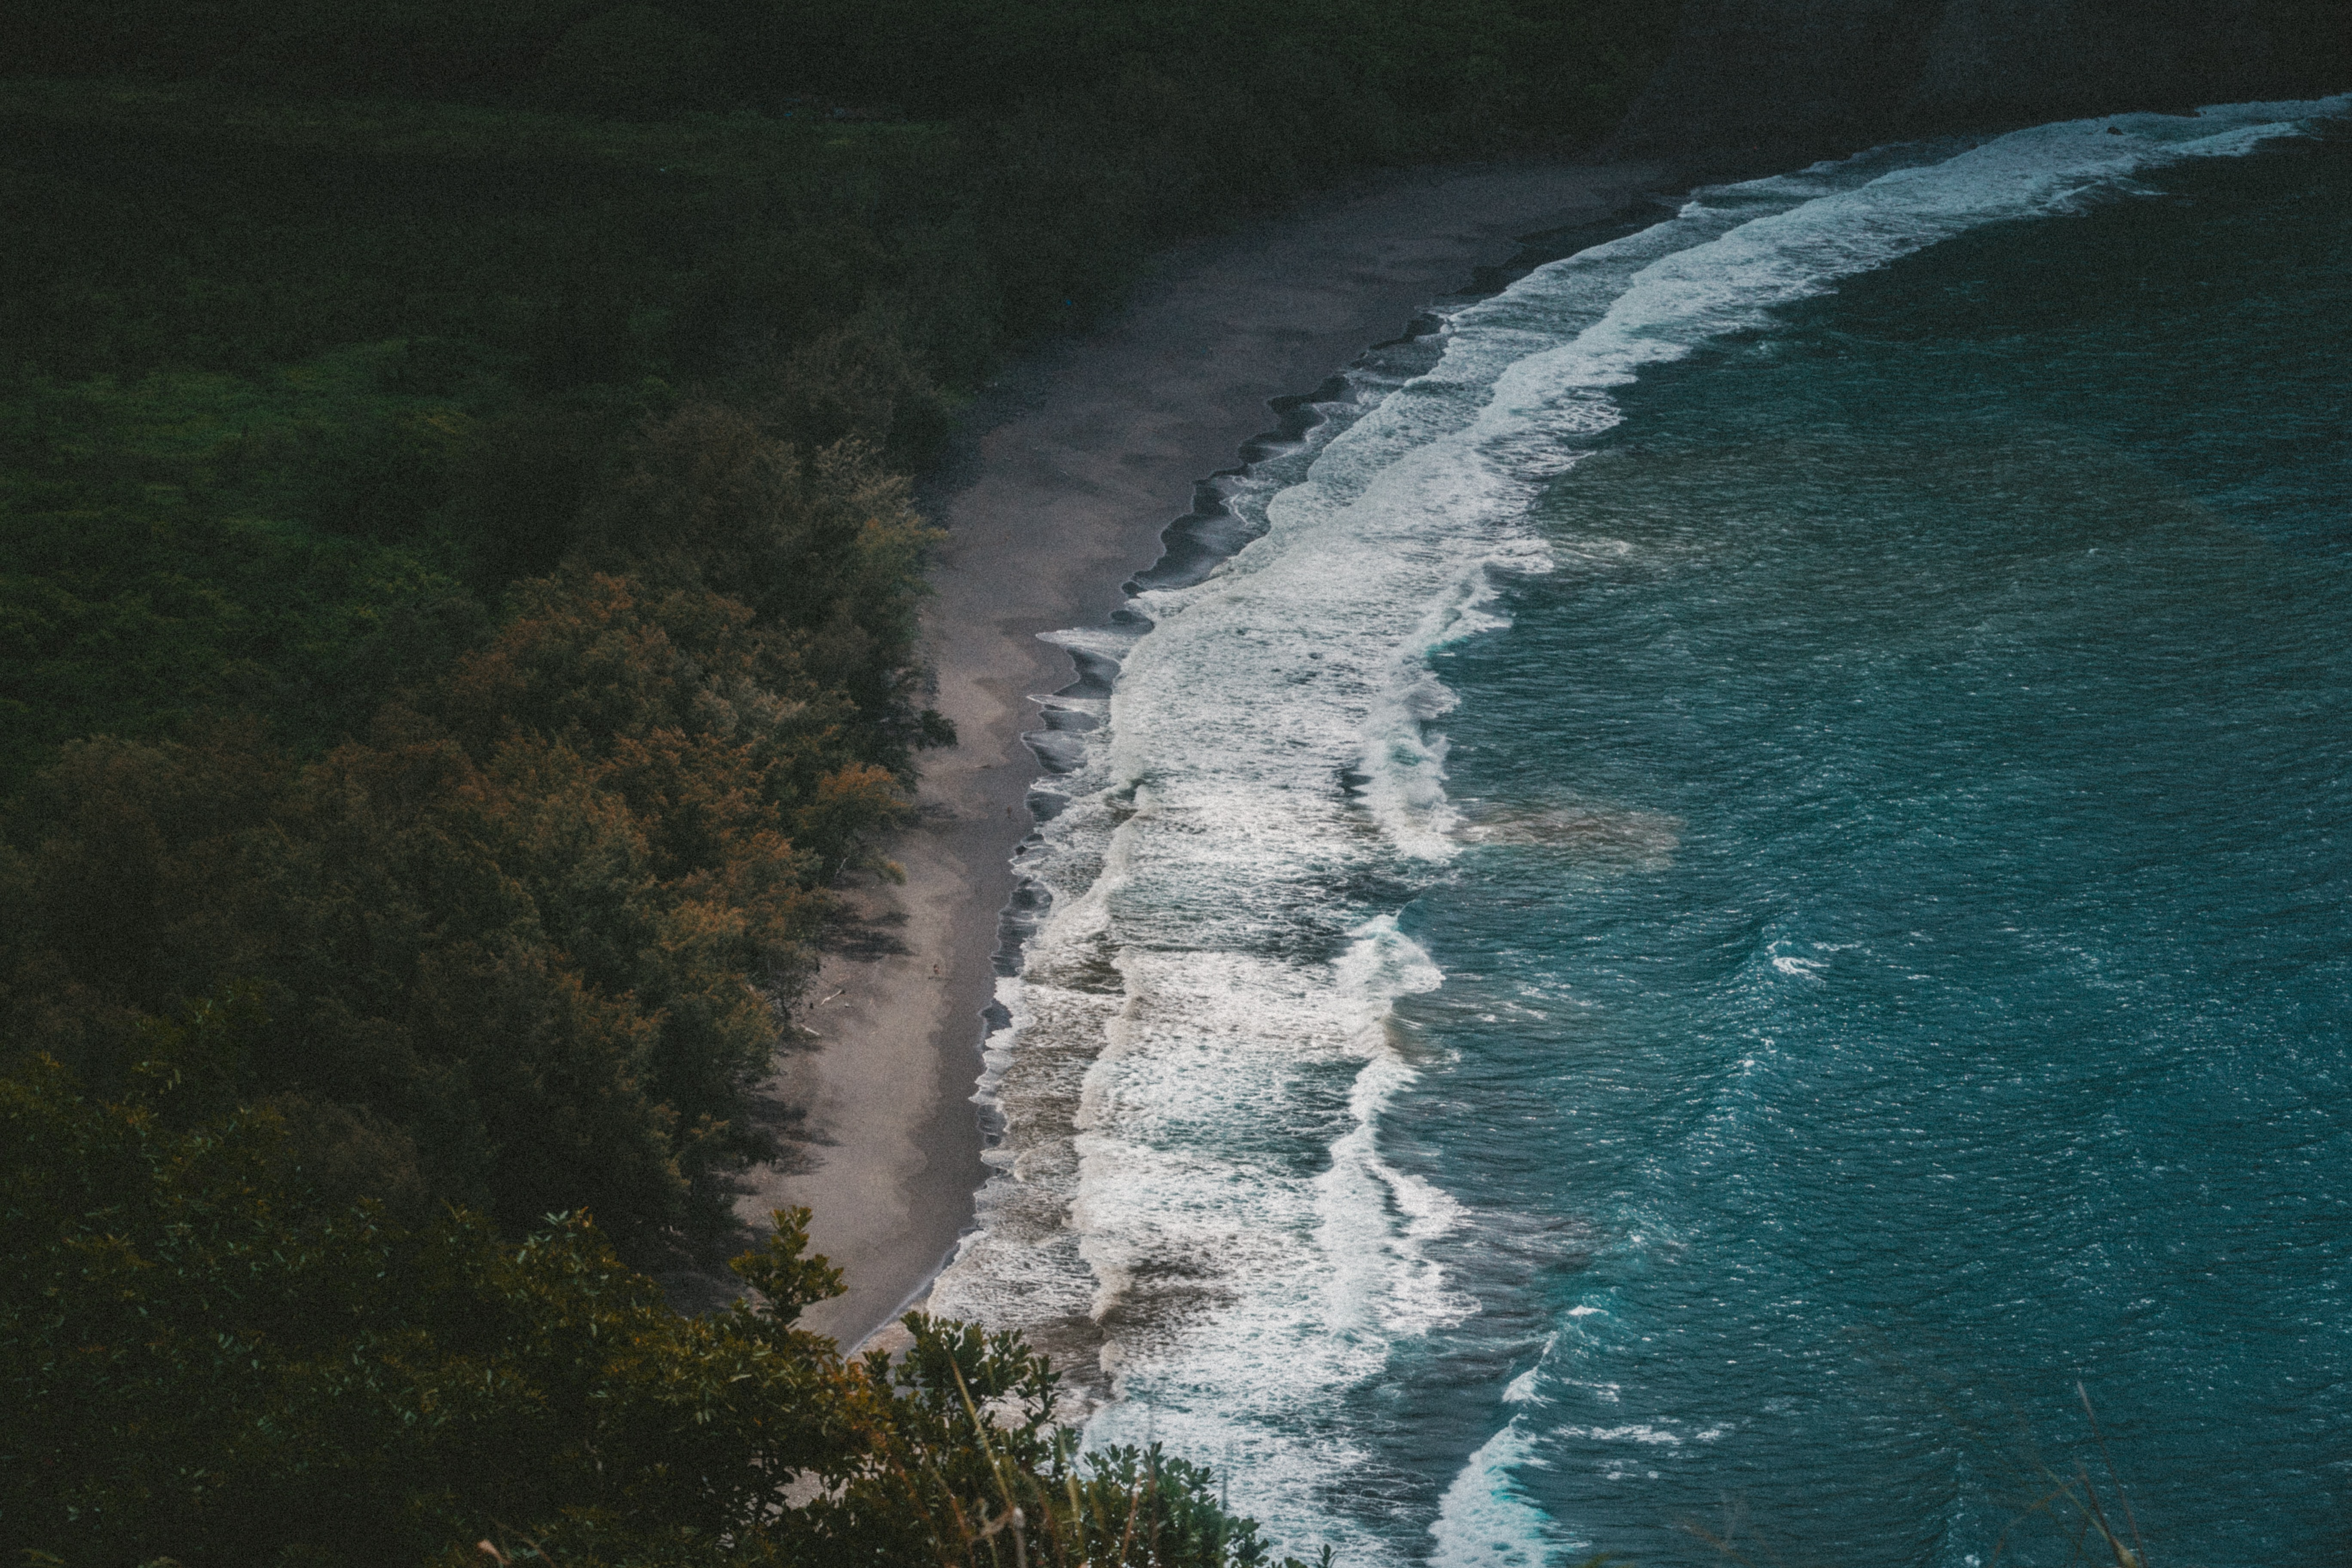 Drone view of the waves washing on the sand beach by the forest